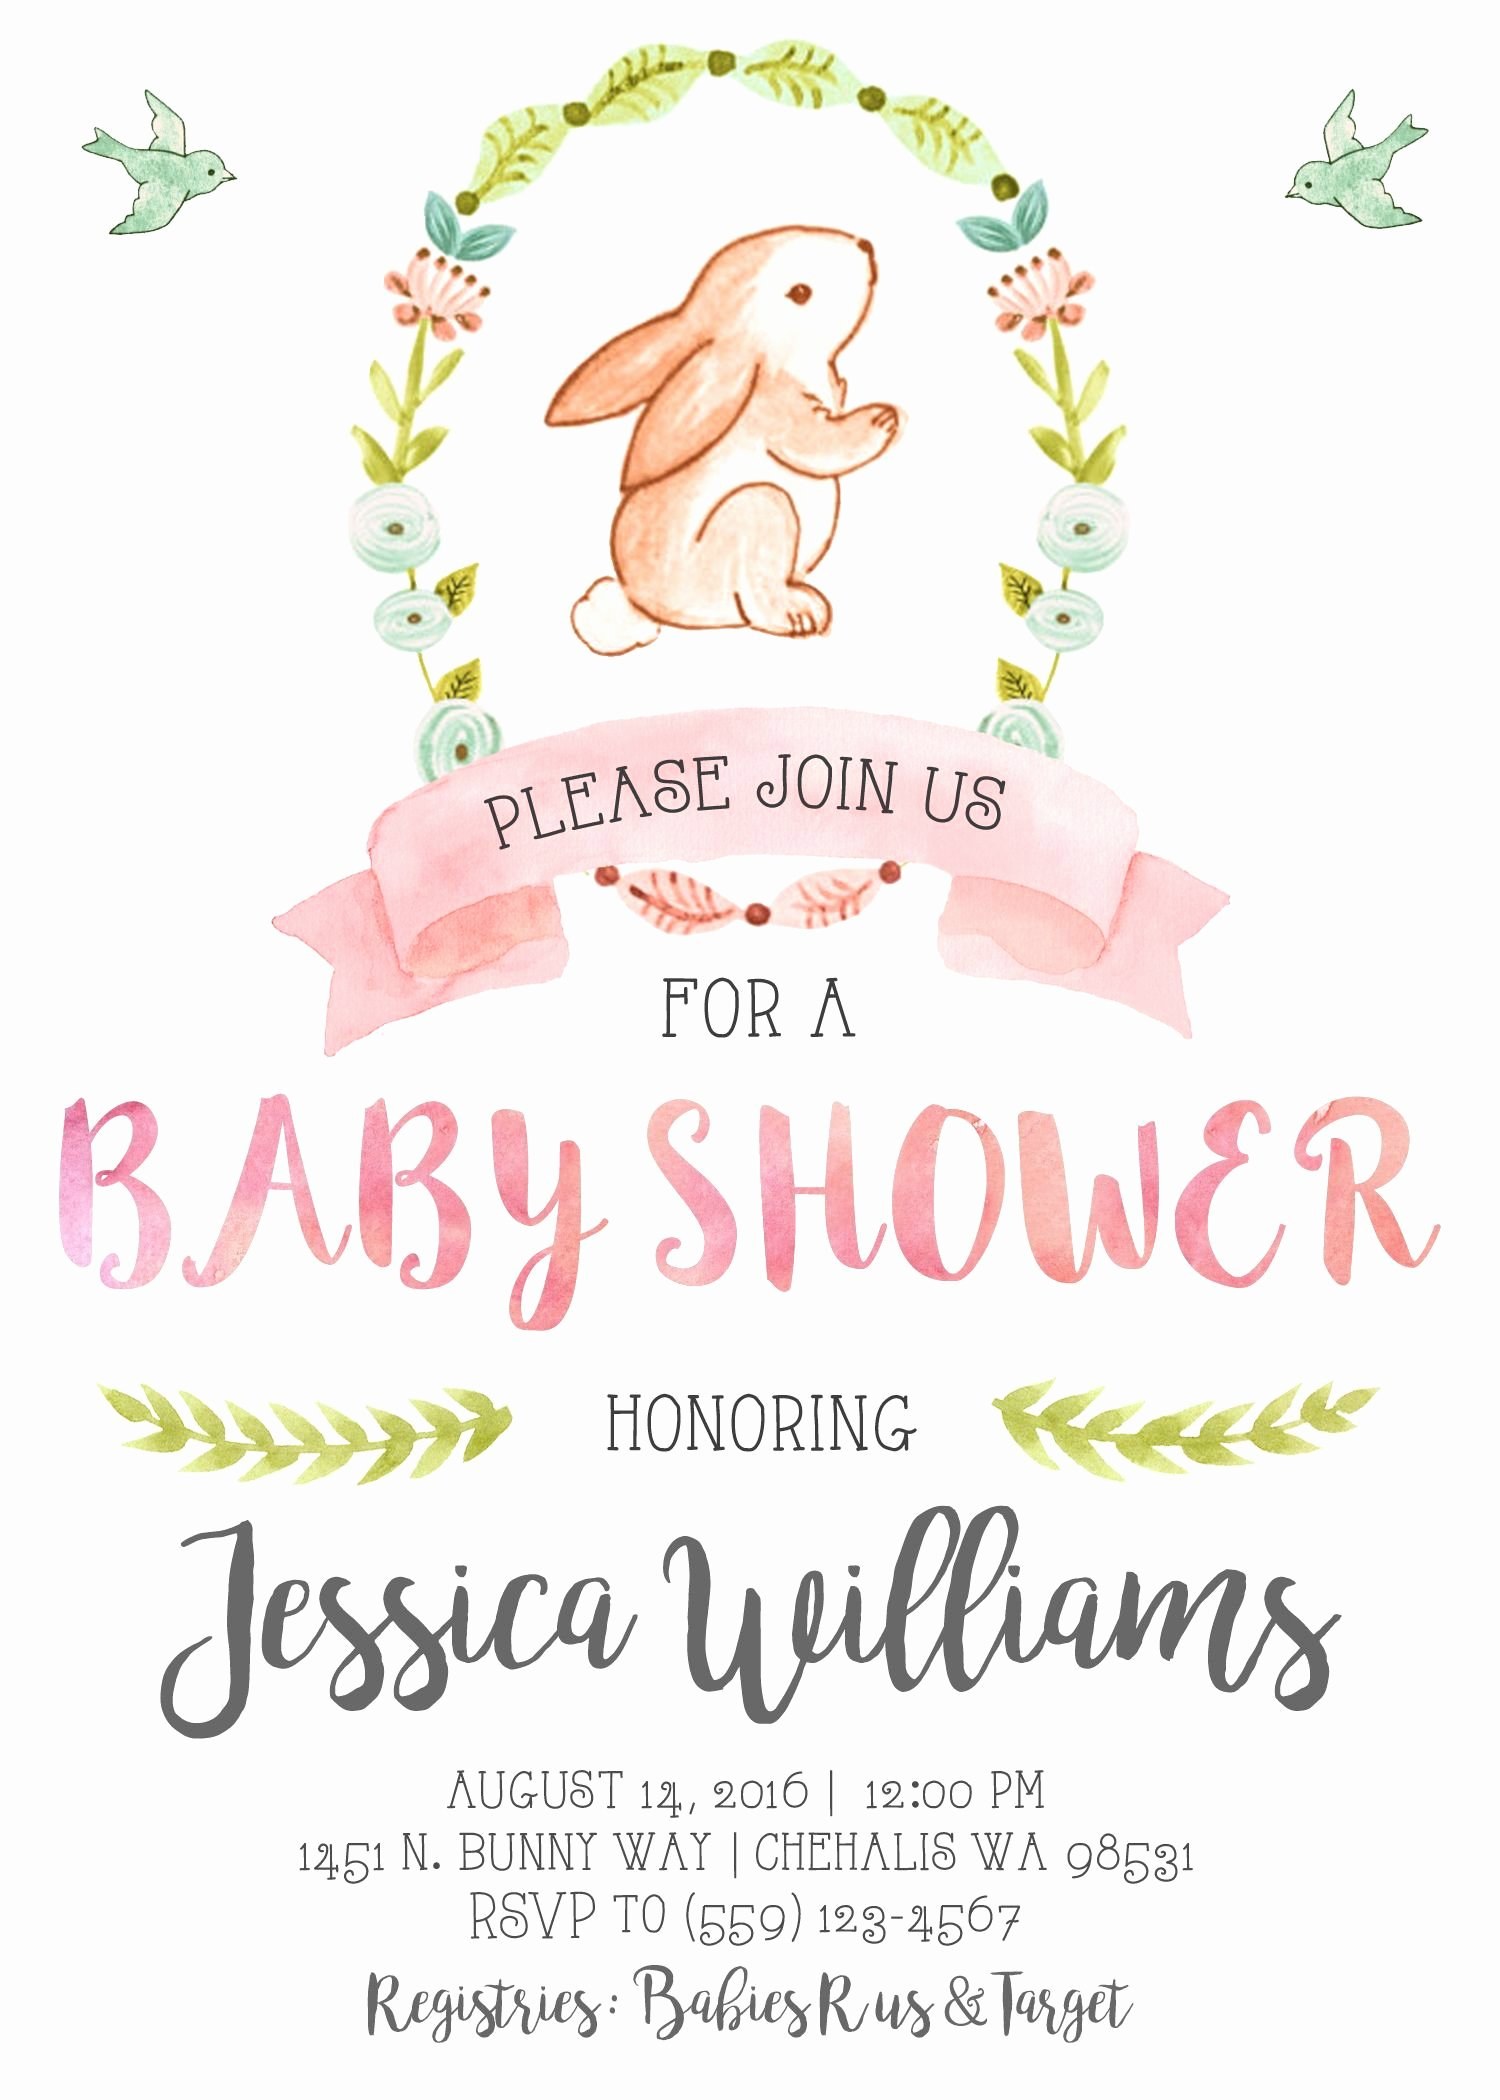 Bunny Birthday Invitation Template Elegant Get Free Printable Bunny Baby Shower Invitation Template